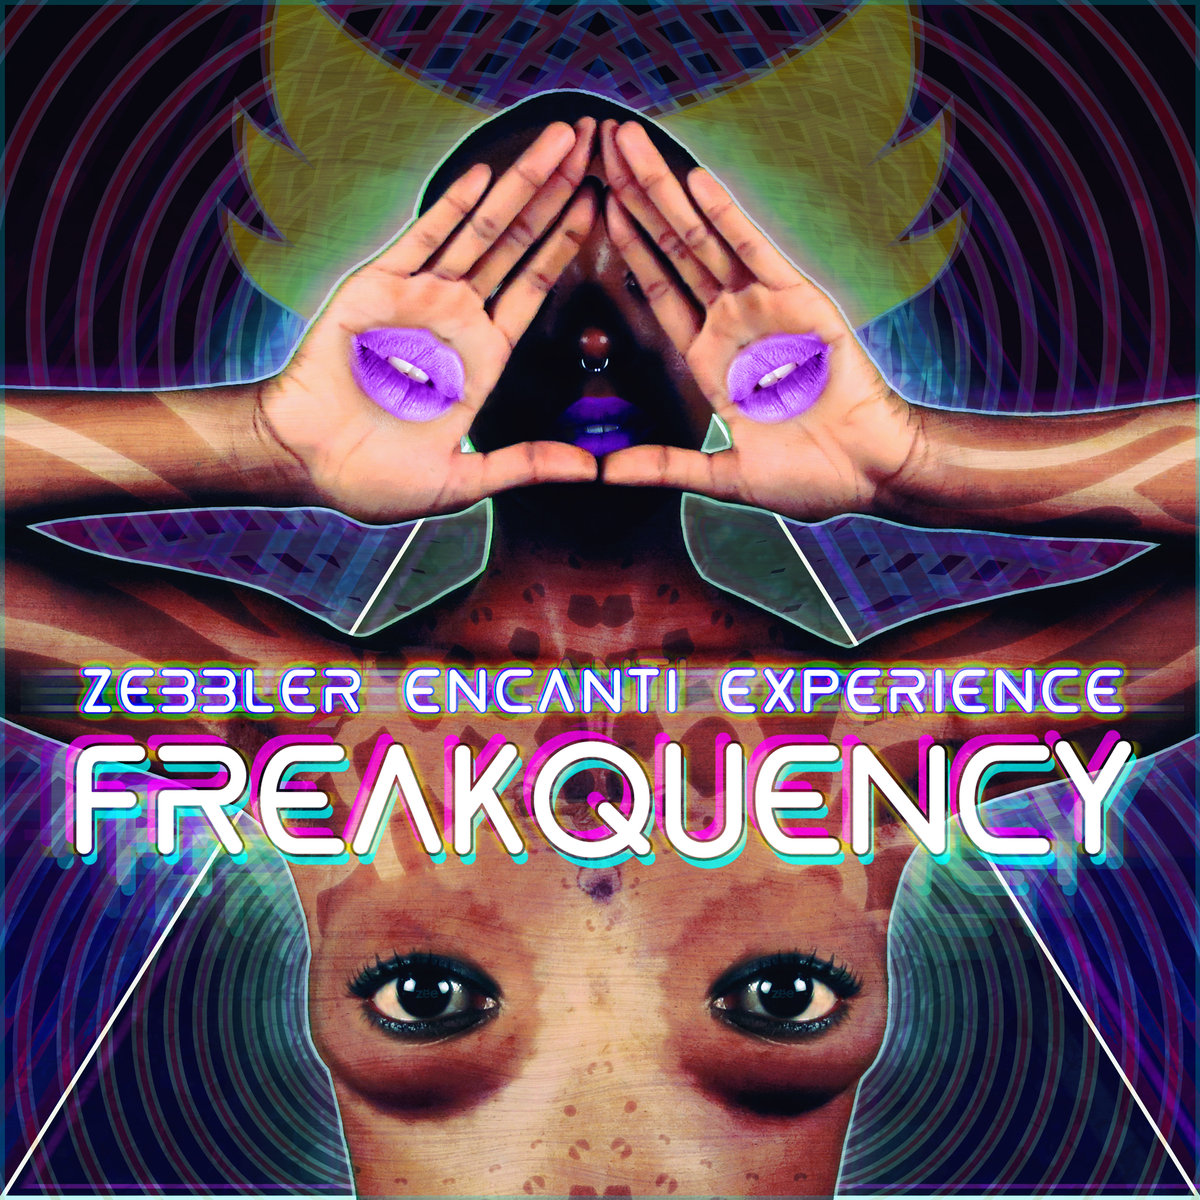 Zebbler Encanti Experience - Perceptronium @ 'Freakquency' album (boston, psychedelic)